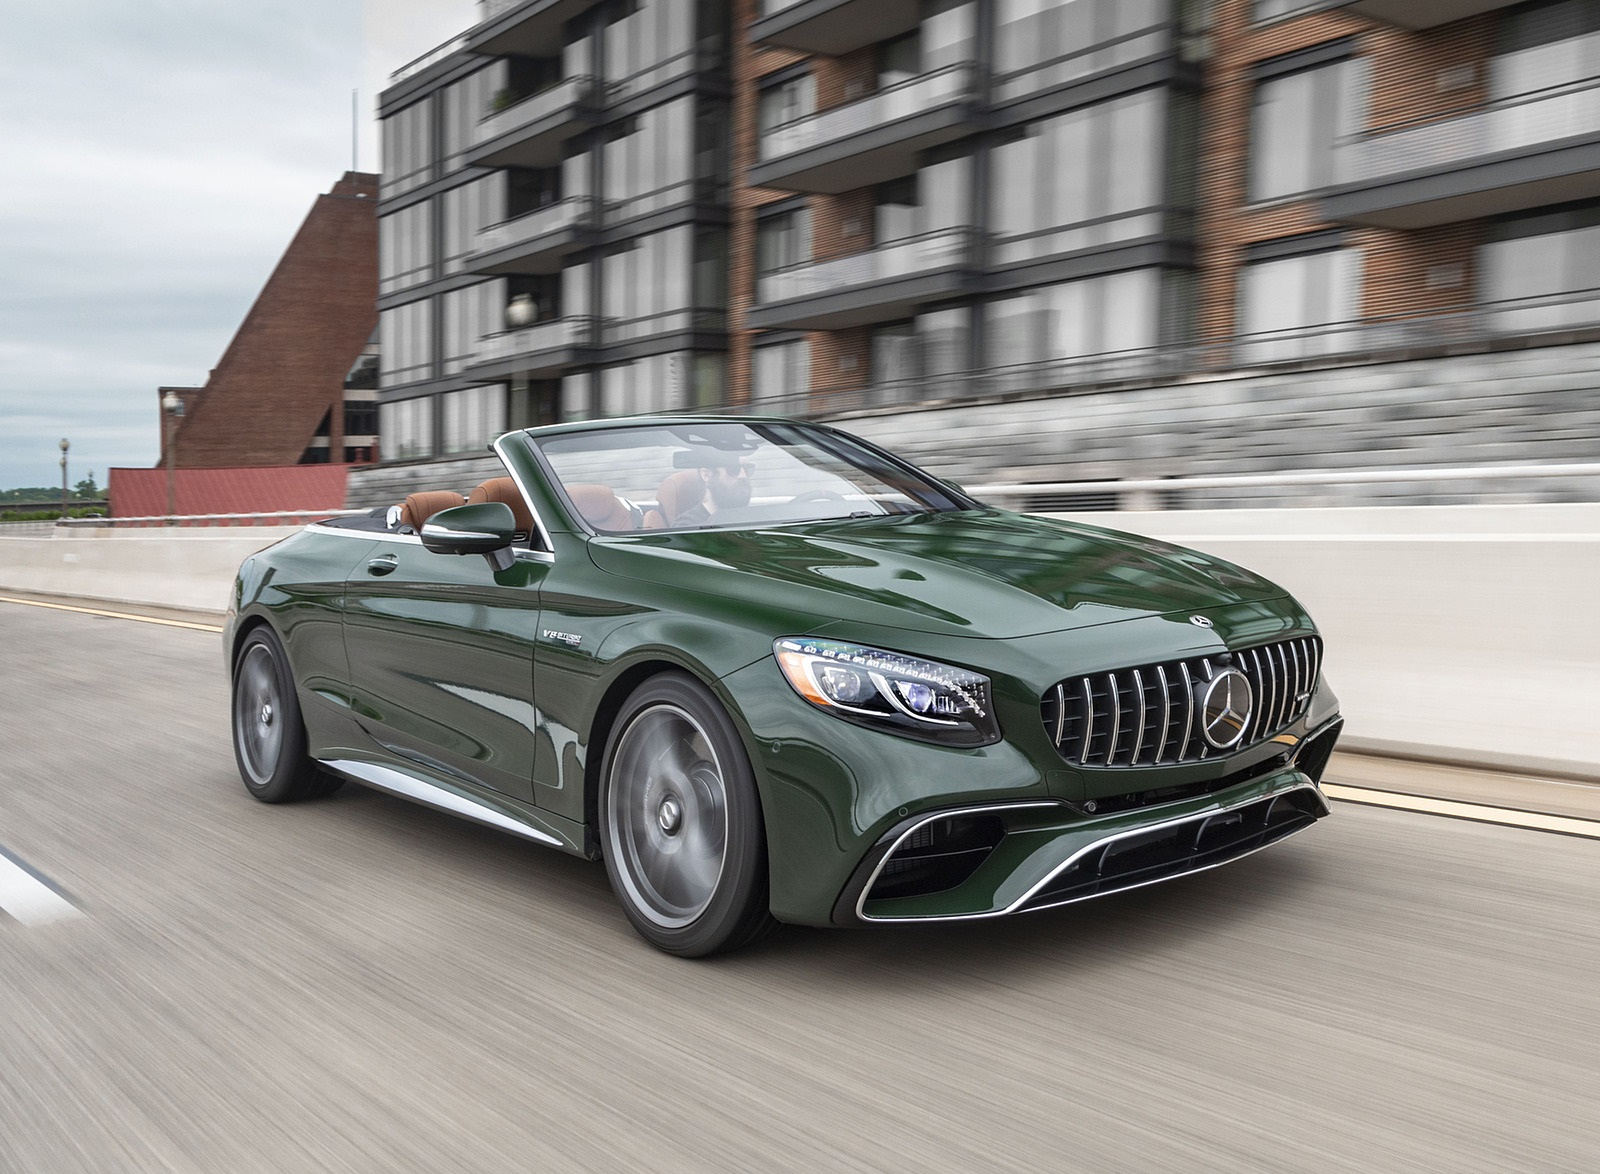 2020 Mercedes-AMG S 63 Cabriolet (US-Spec) Front Three-Quarter Wallpapers (4)